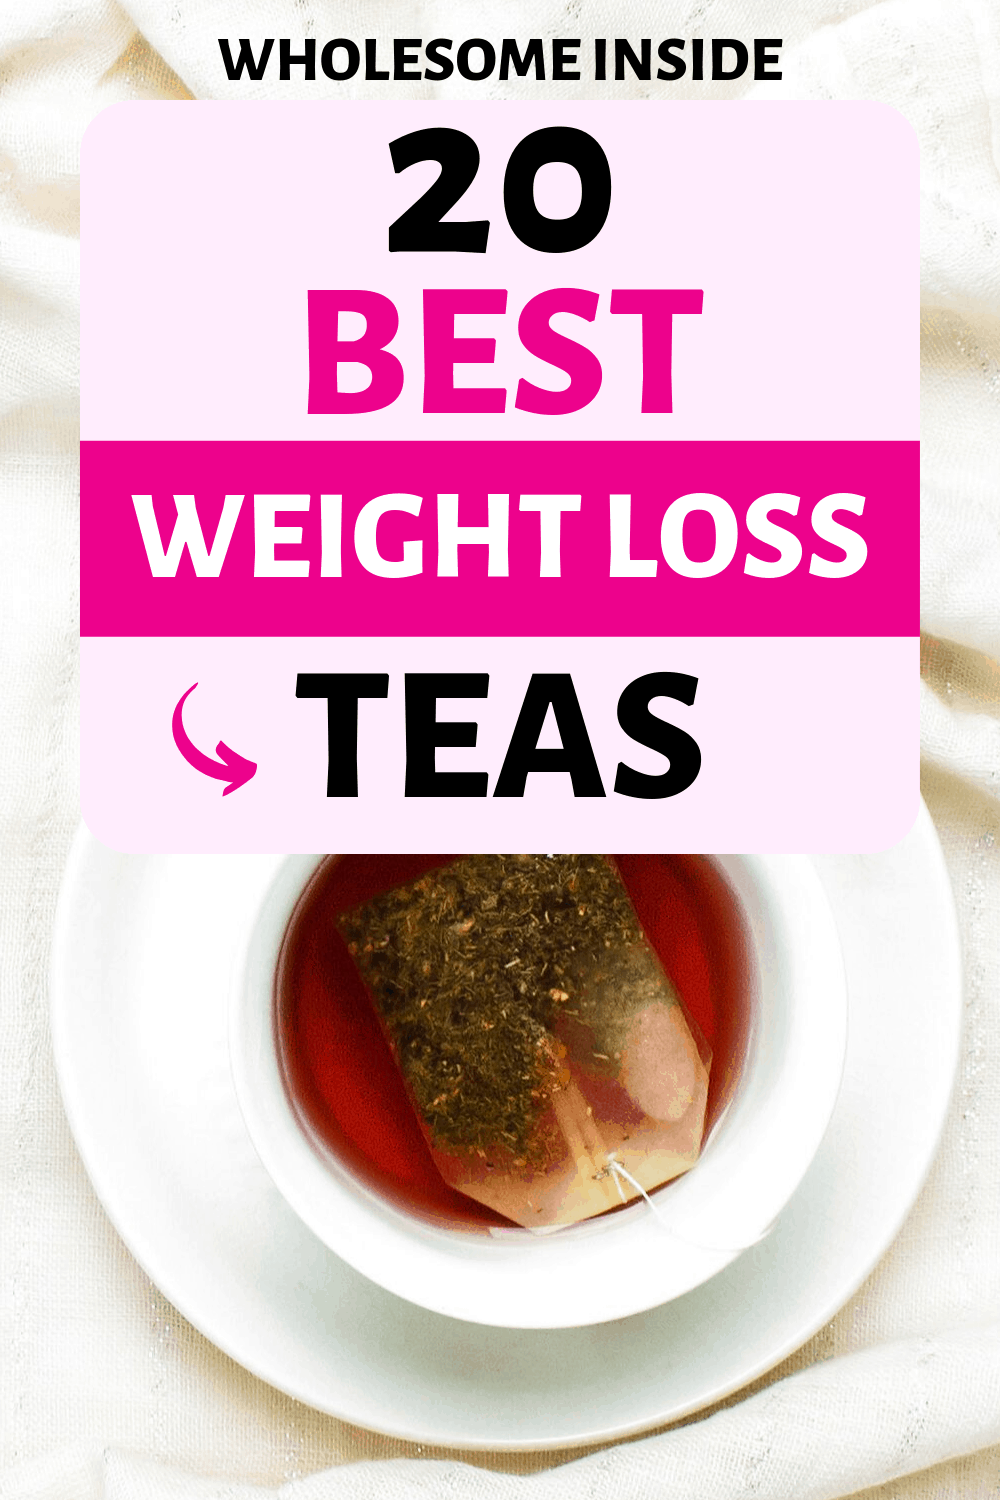 20 of the best weight loss teas available in 2019.